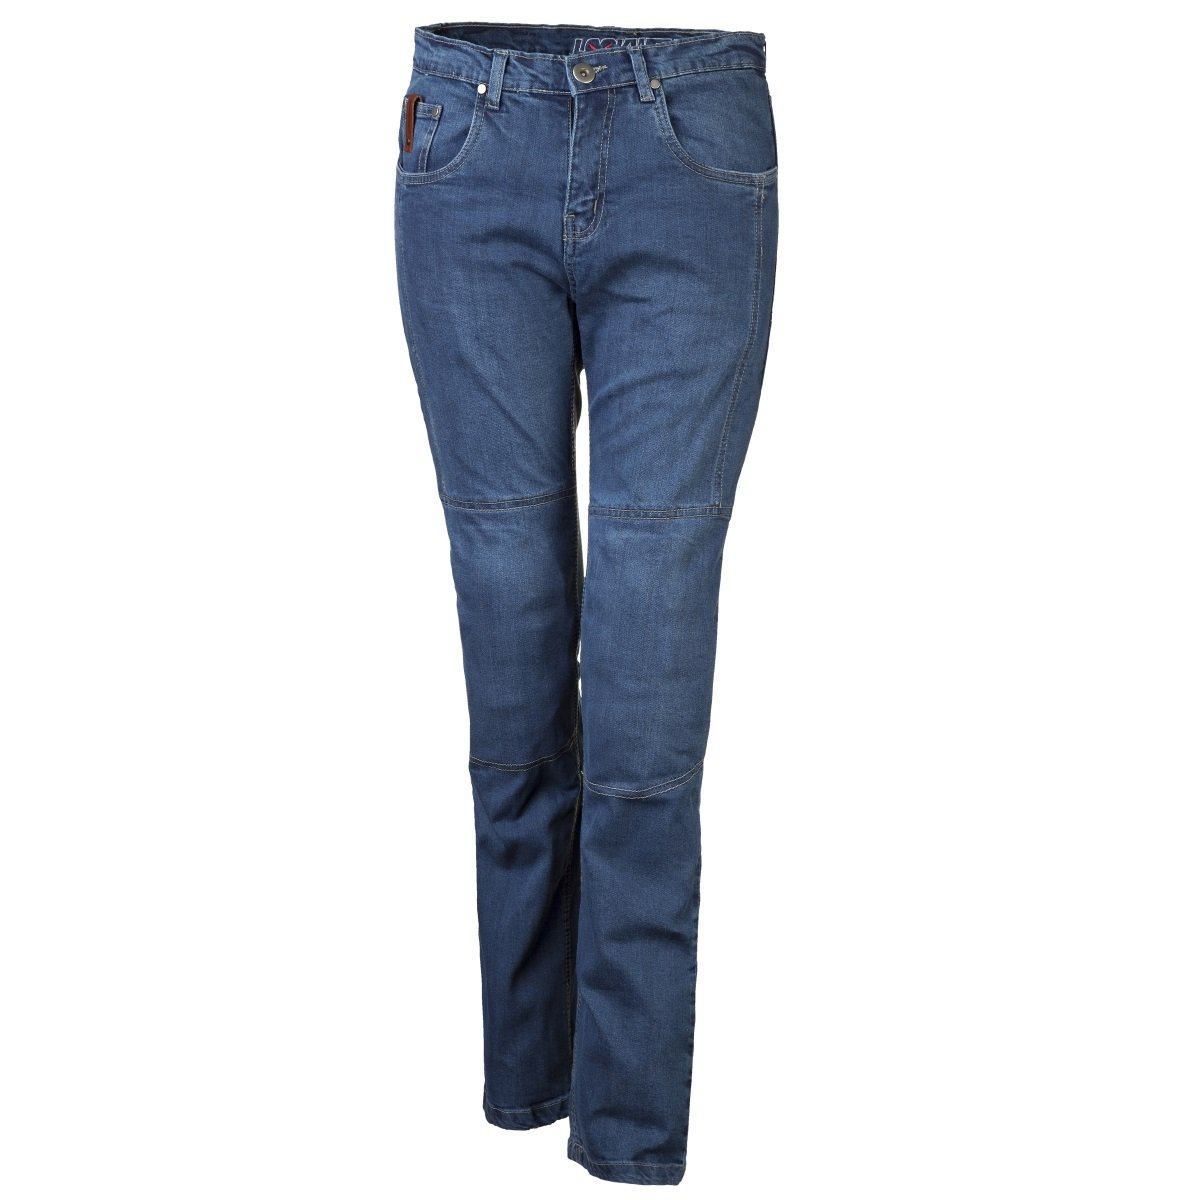 Lookwell JUNE Jeans modrá 32